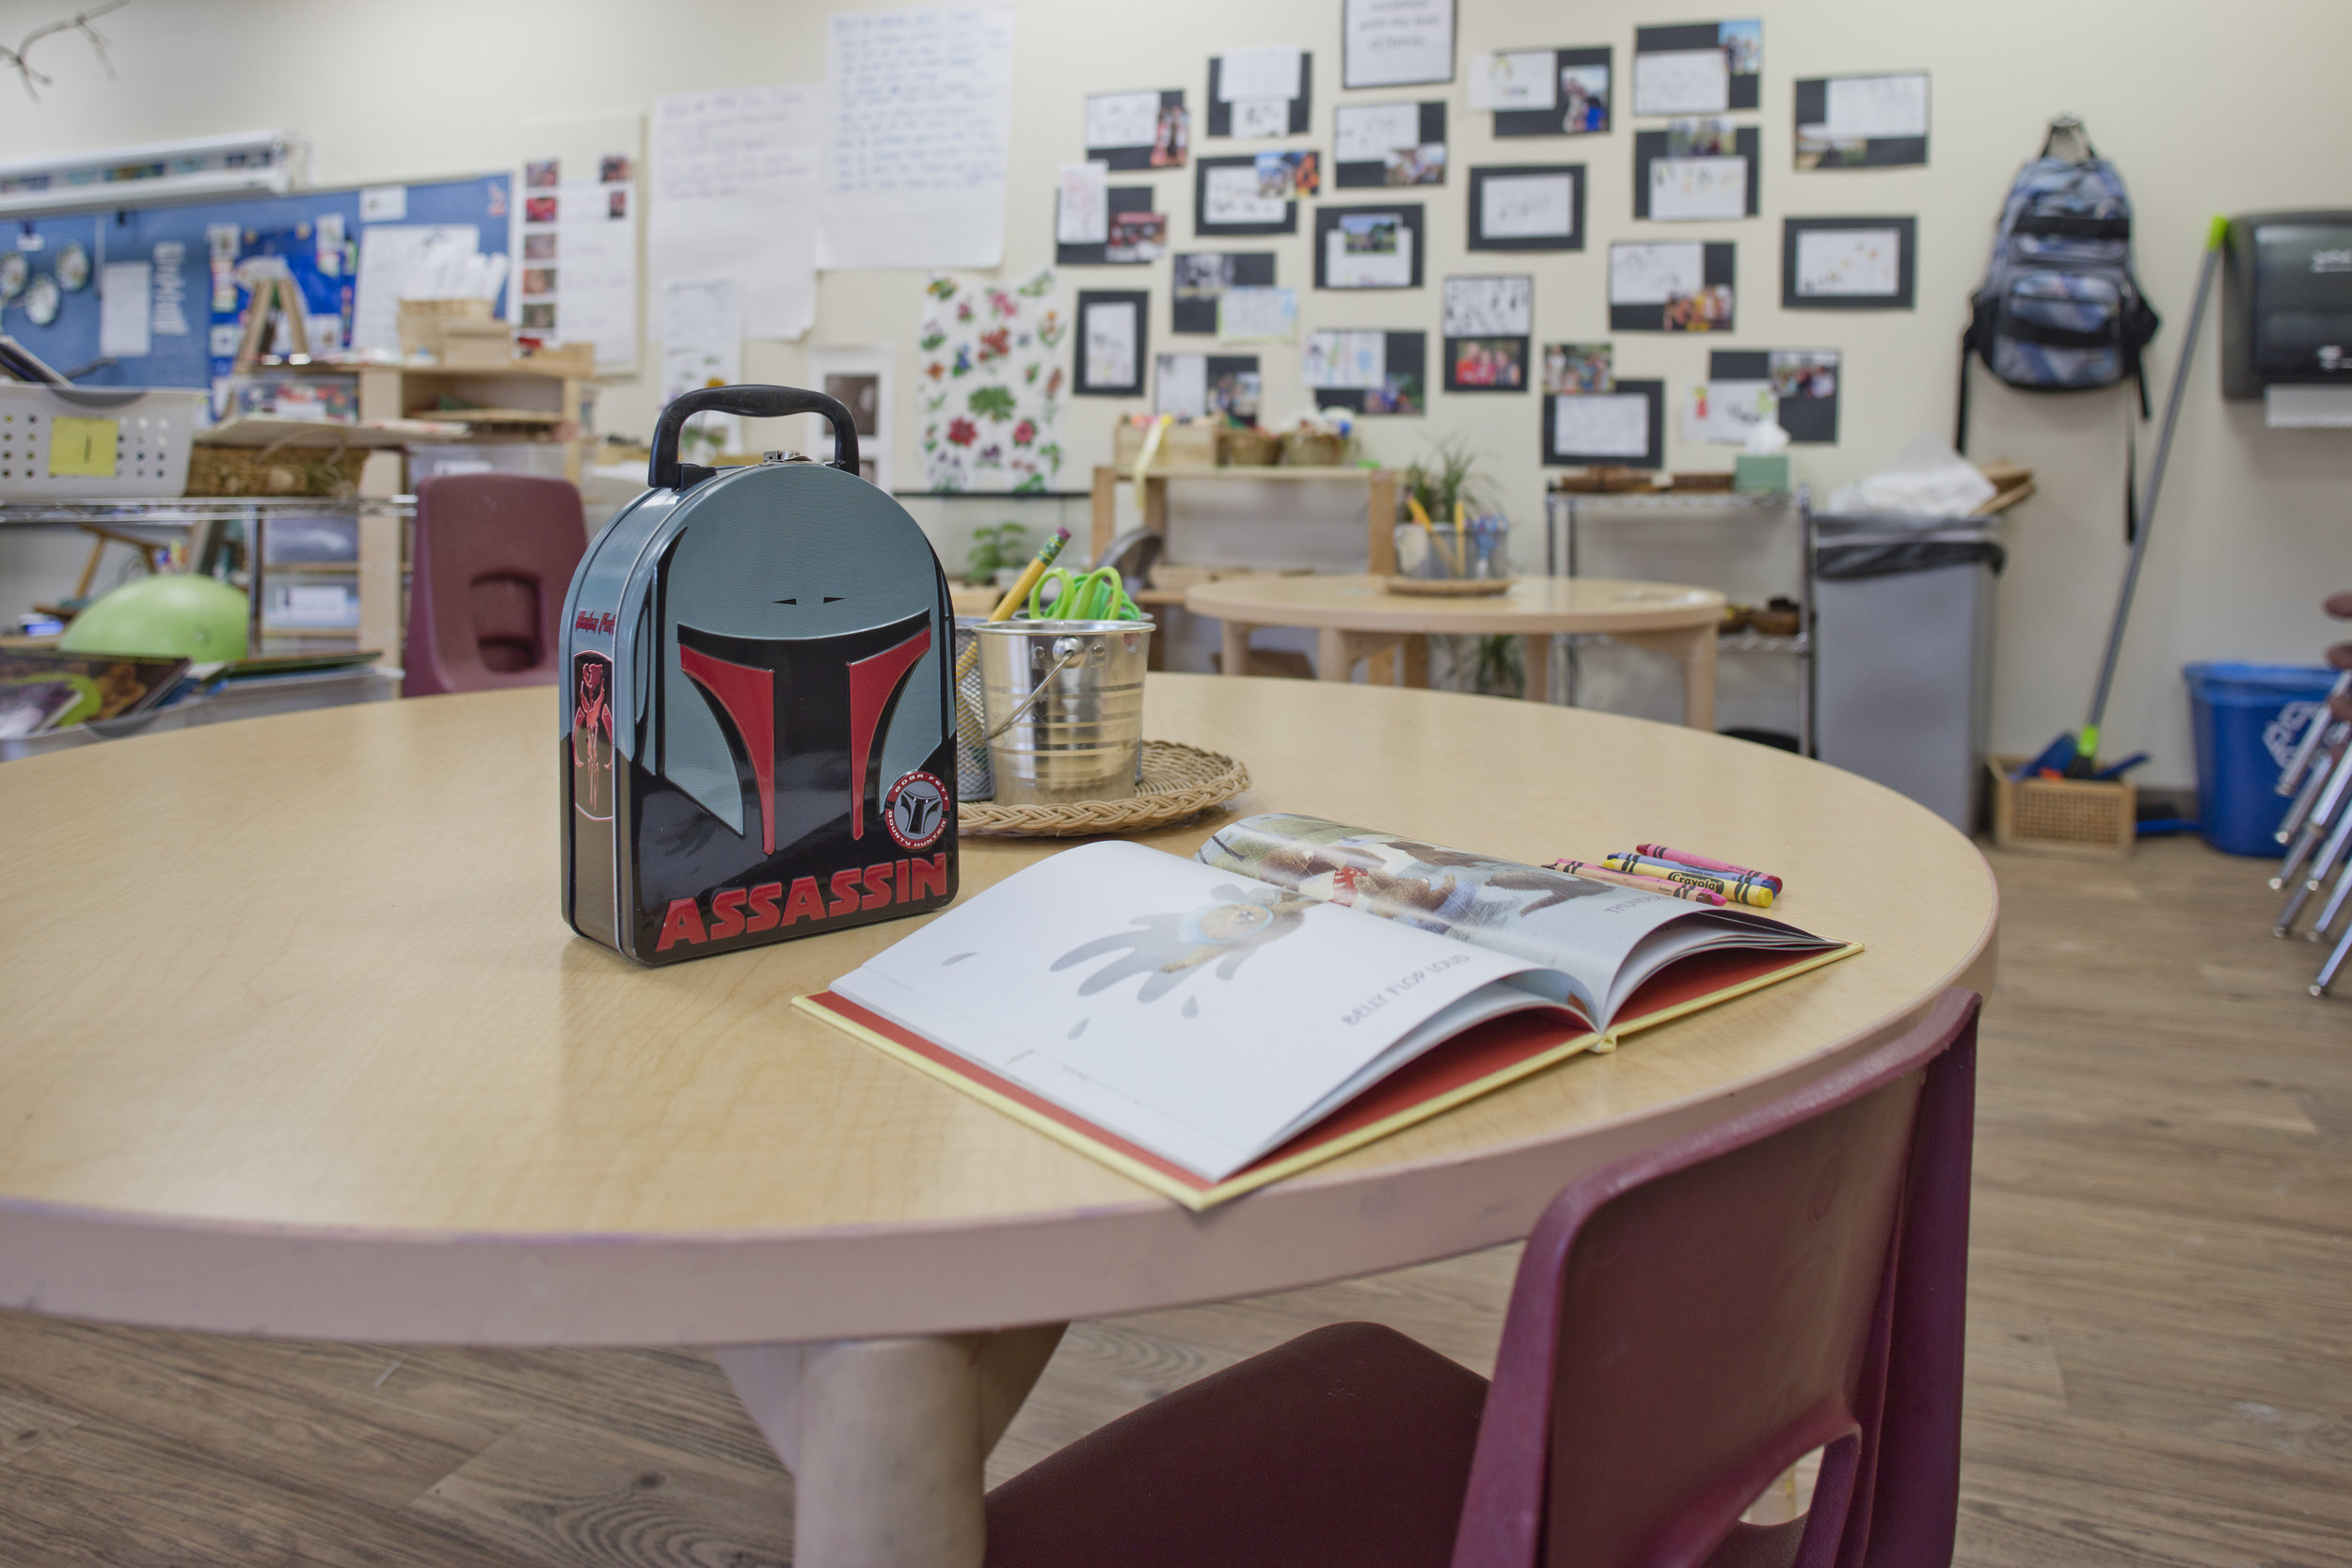 STAR WARS ASSASSIN LUNCHBOX